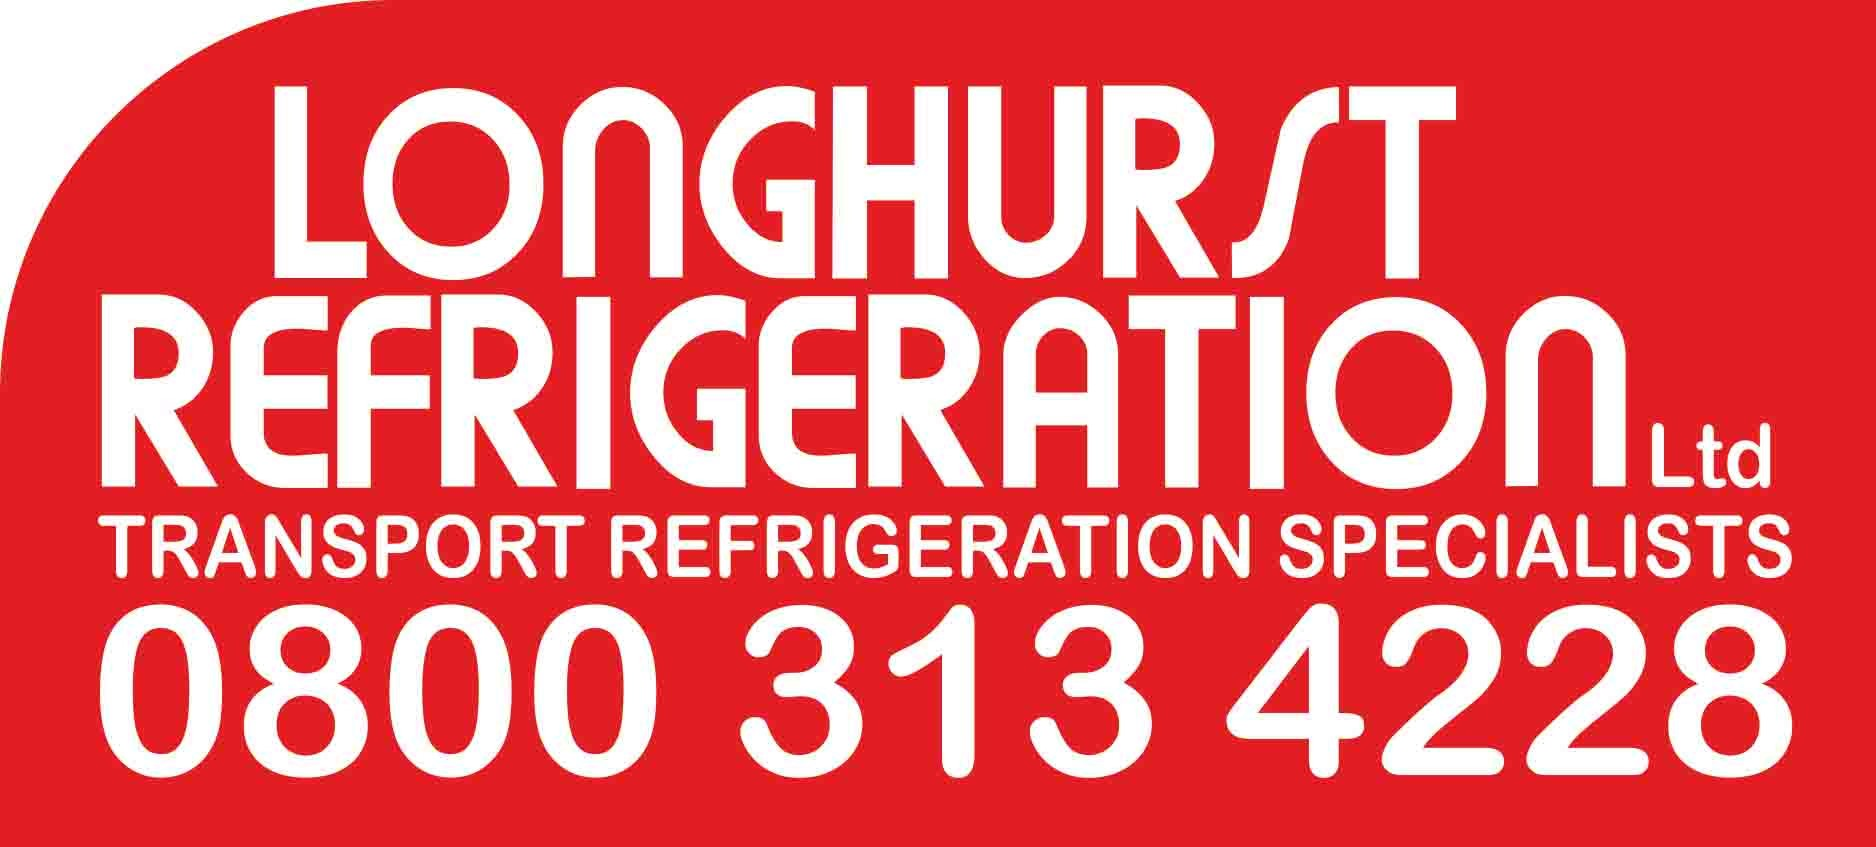 LONGHURST REFRIGERATION Ltd